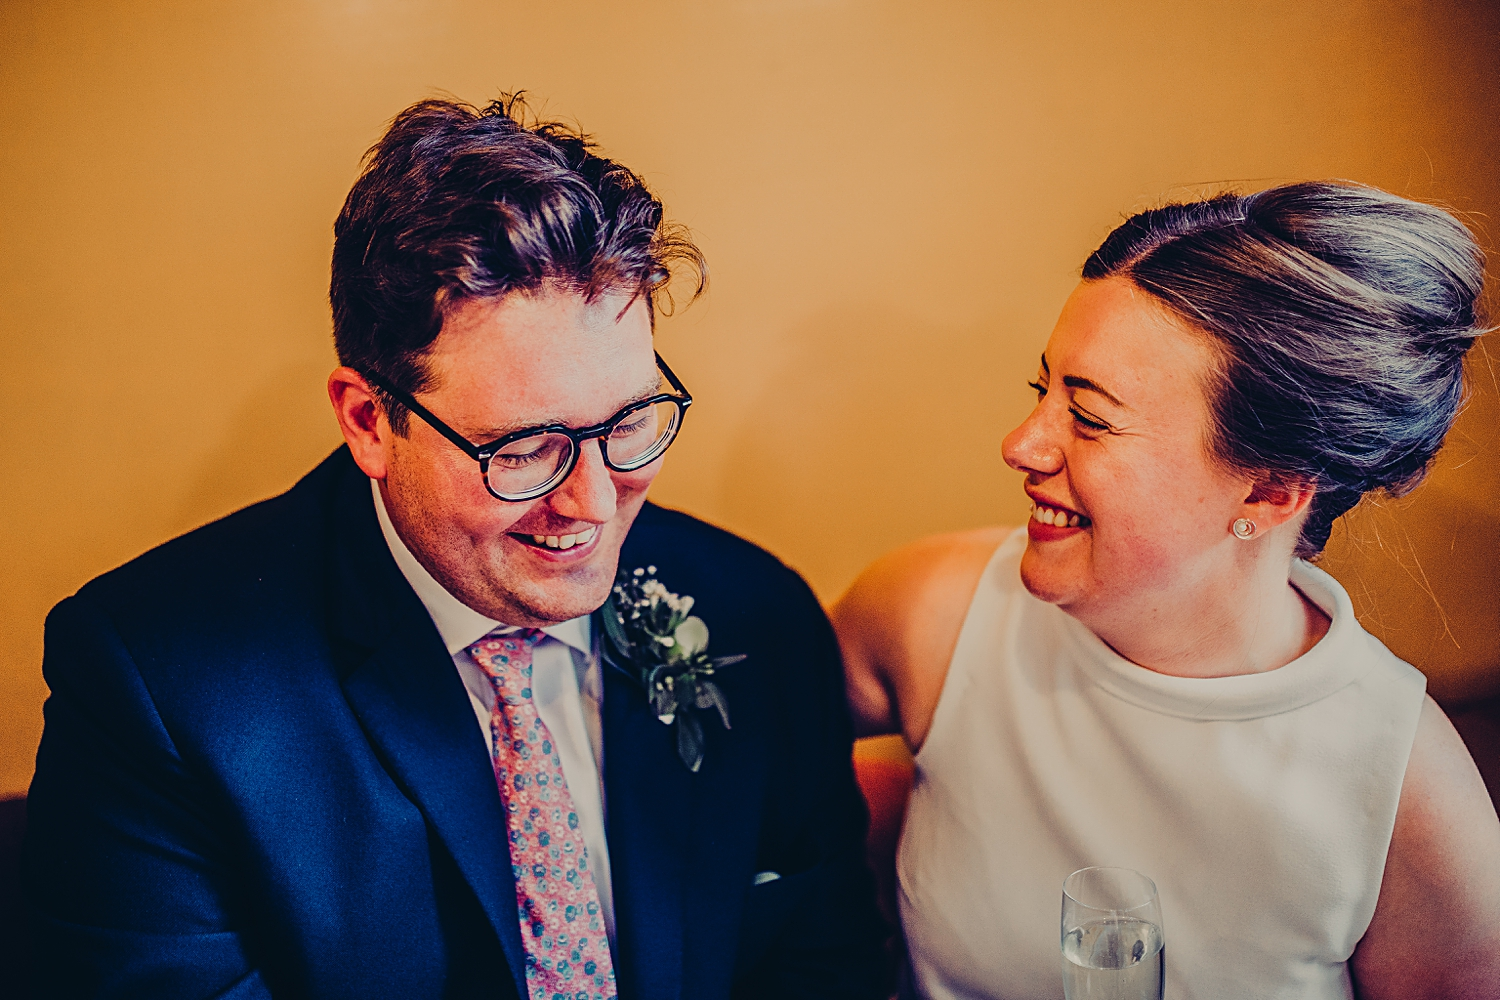 (18 of 20)Manchester natural wedding unposed - CHELSEA SHOESMITH PHOTOGRAPHY